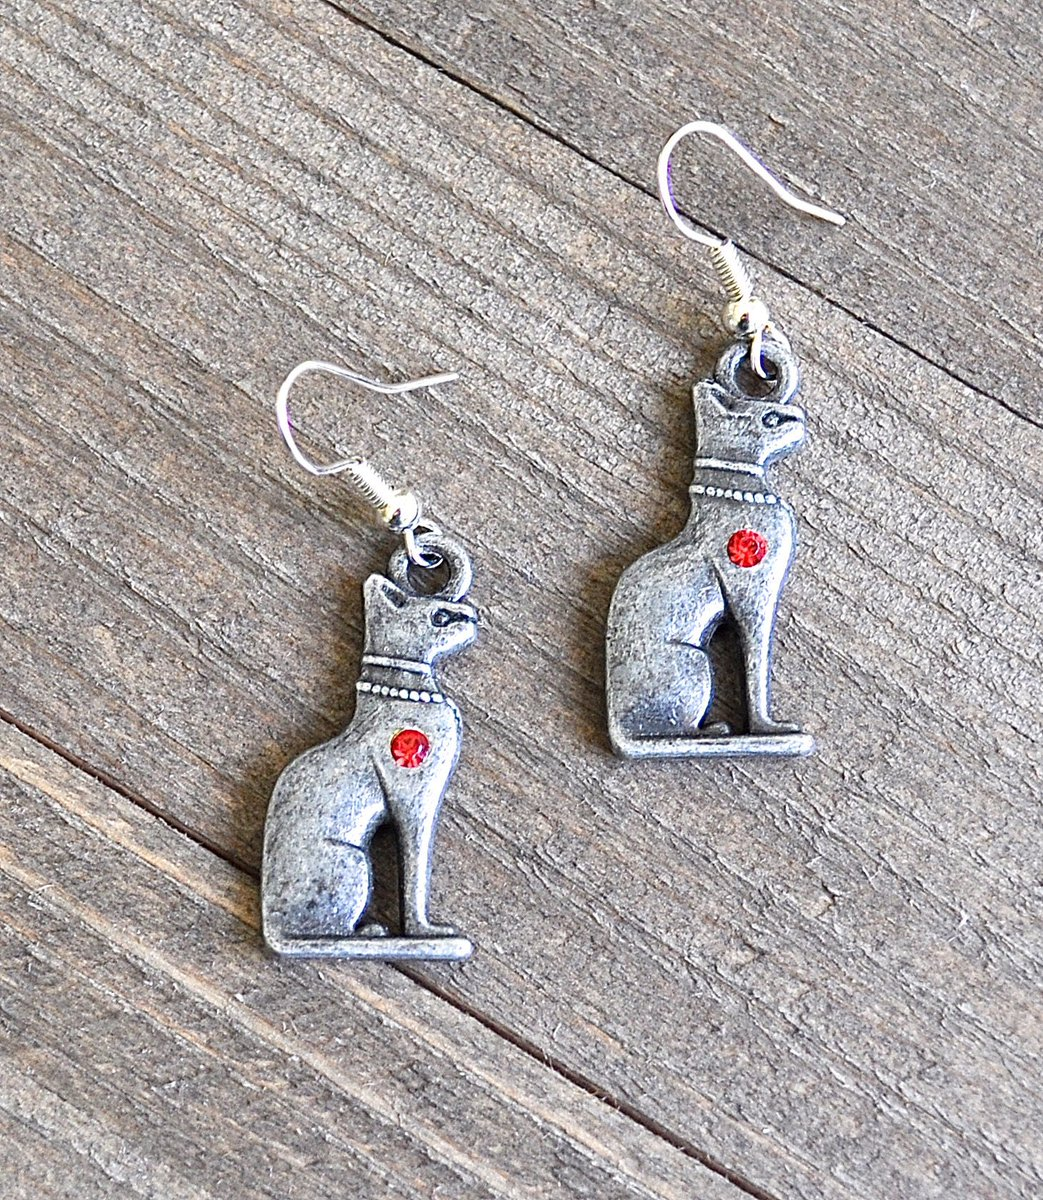 Silver Egyptian Cat Earrings by Rayvenwoodmanor Jewelry! #silvercat #catearrings  #bastet #egyptianjewelry #catgoddess #catjewelry #egyptiancatgoddess #egyptiancat #rayvenwoodmanor #artistalley #megacon #megacon2021 #goddessearrings #silvercatjewelry https://etsy.me/3ht2mExpic.twitter.com/dvev9e6PQw